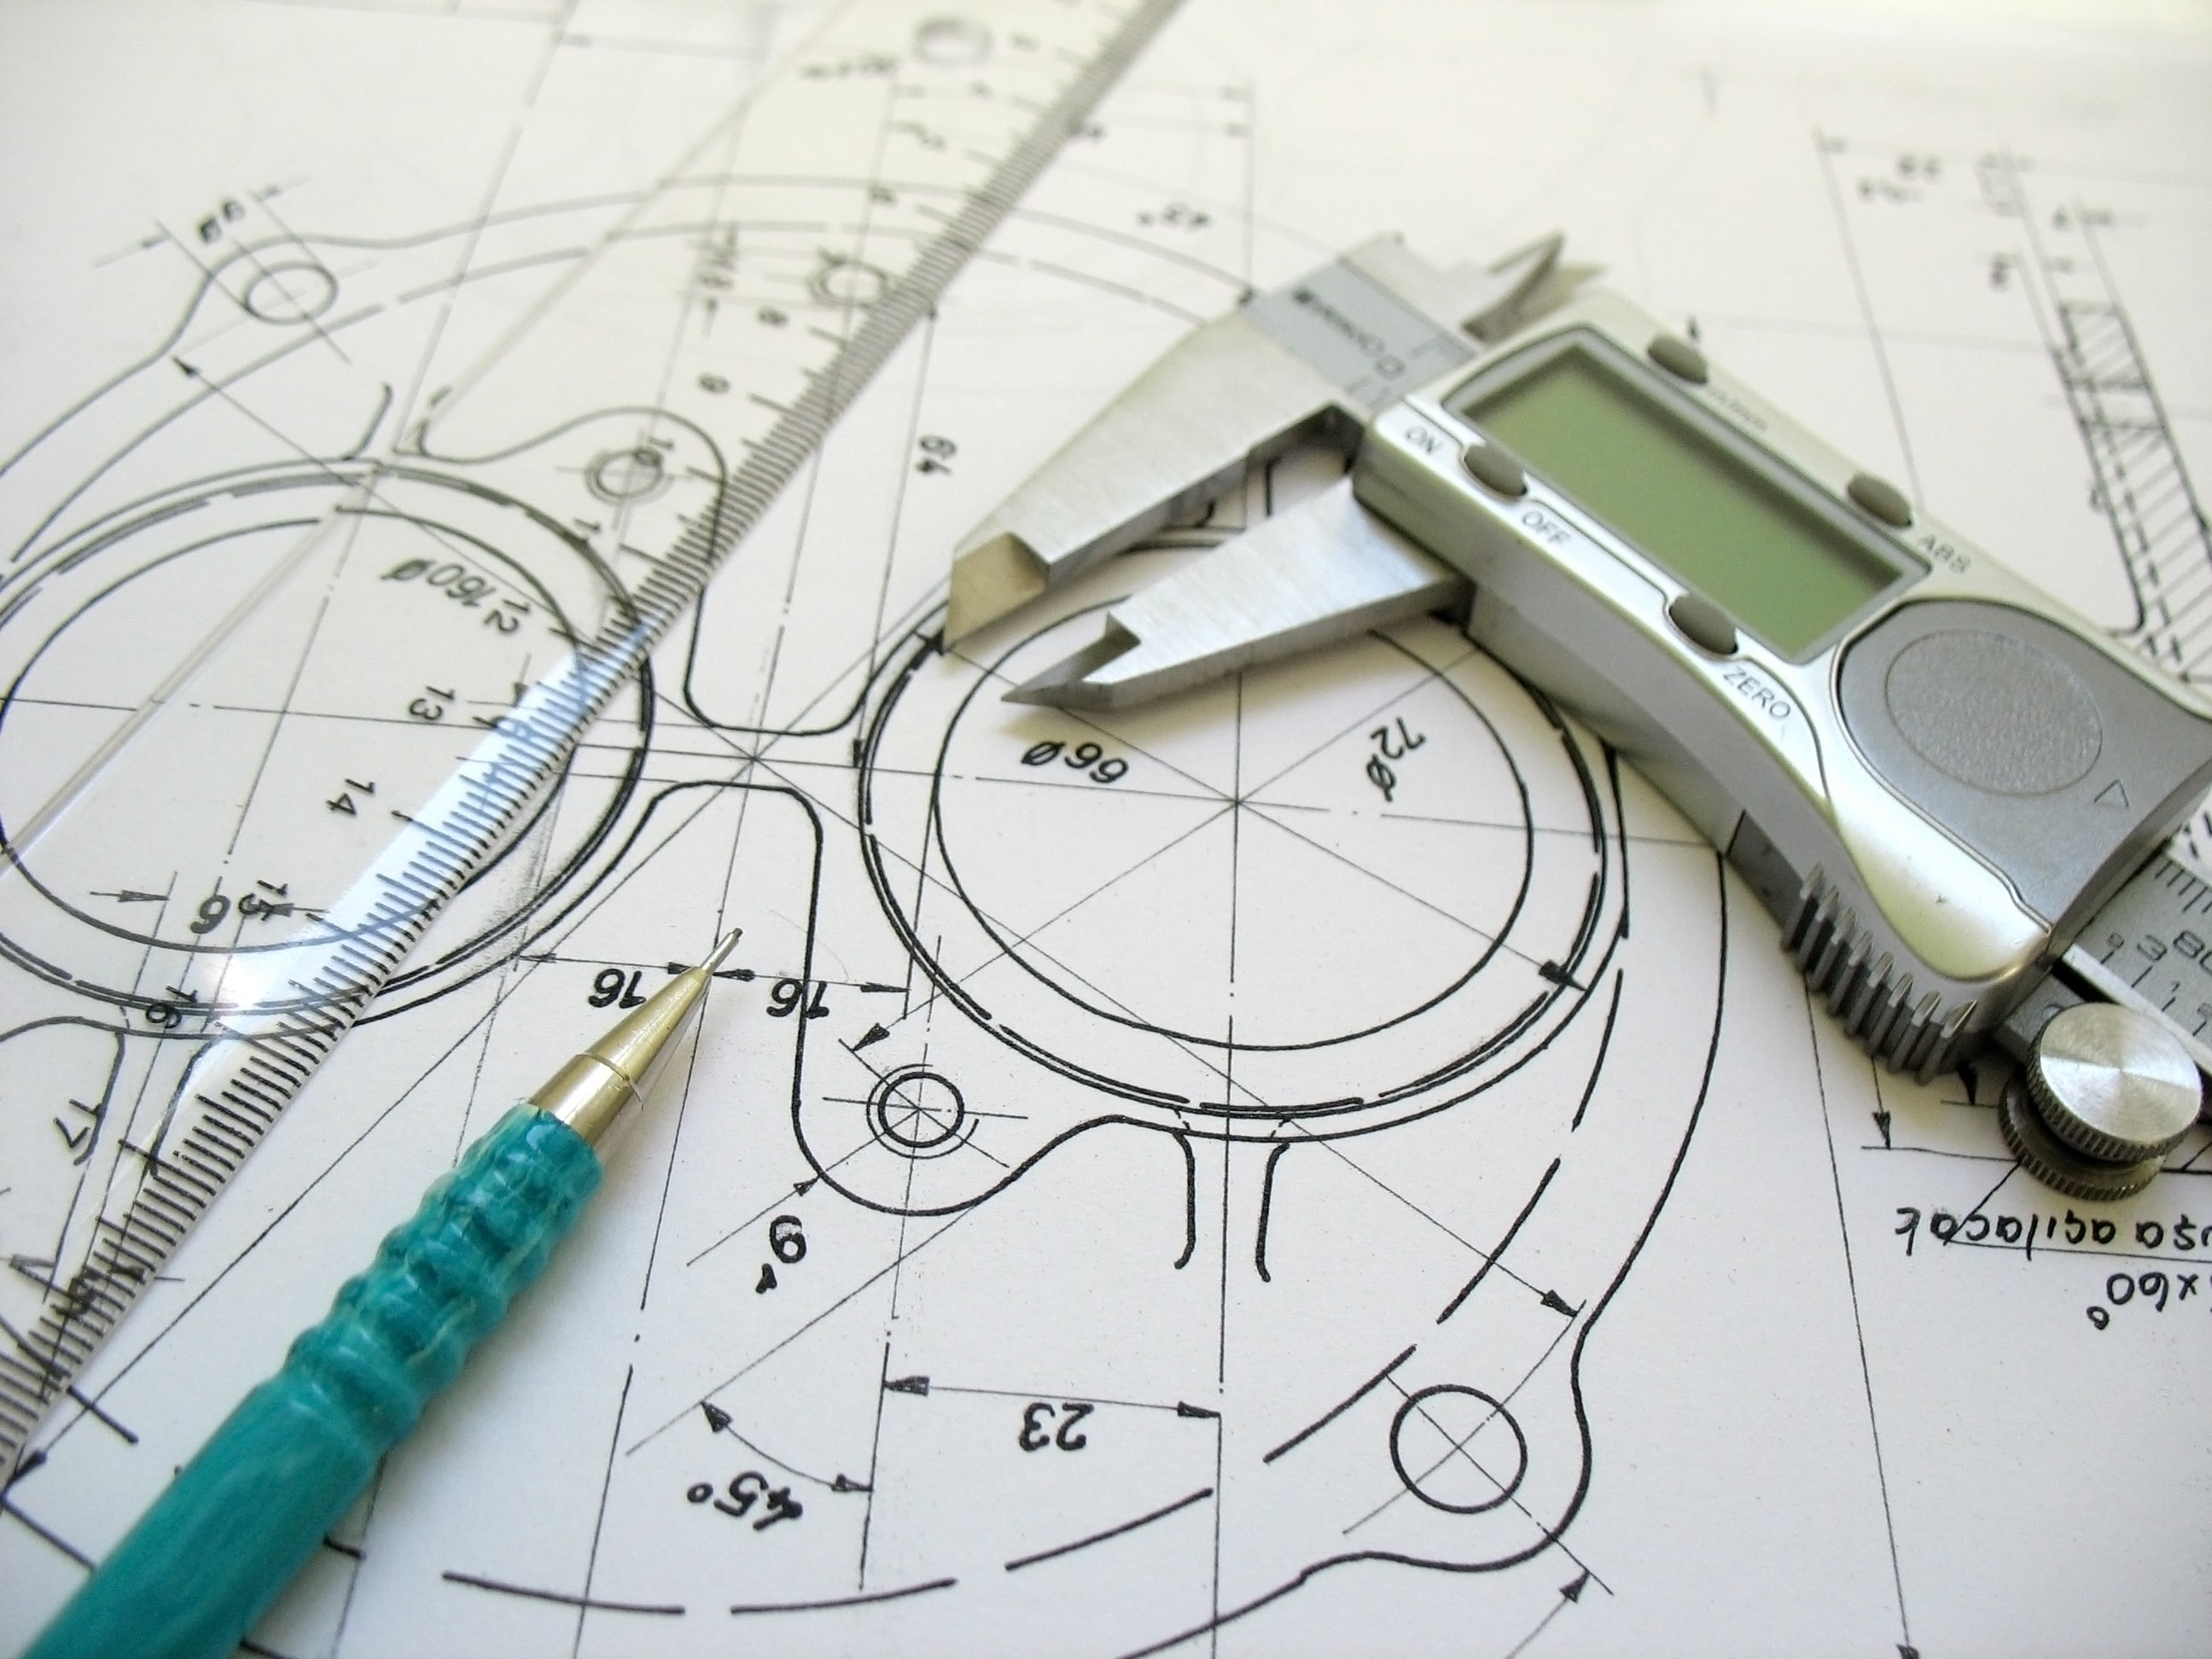 Engineering CAD drawing